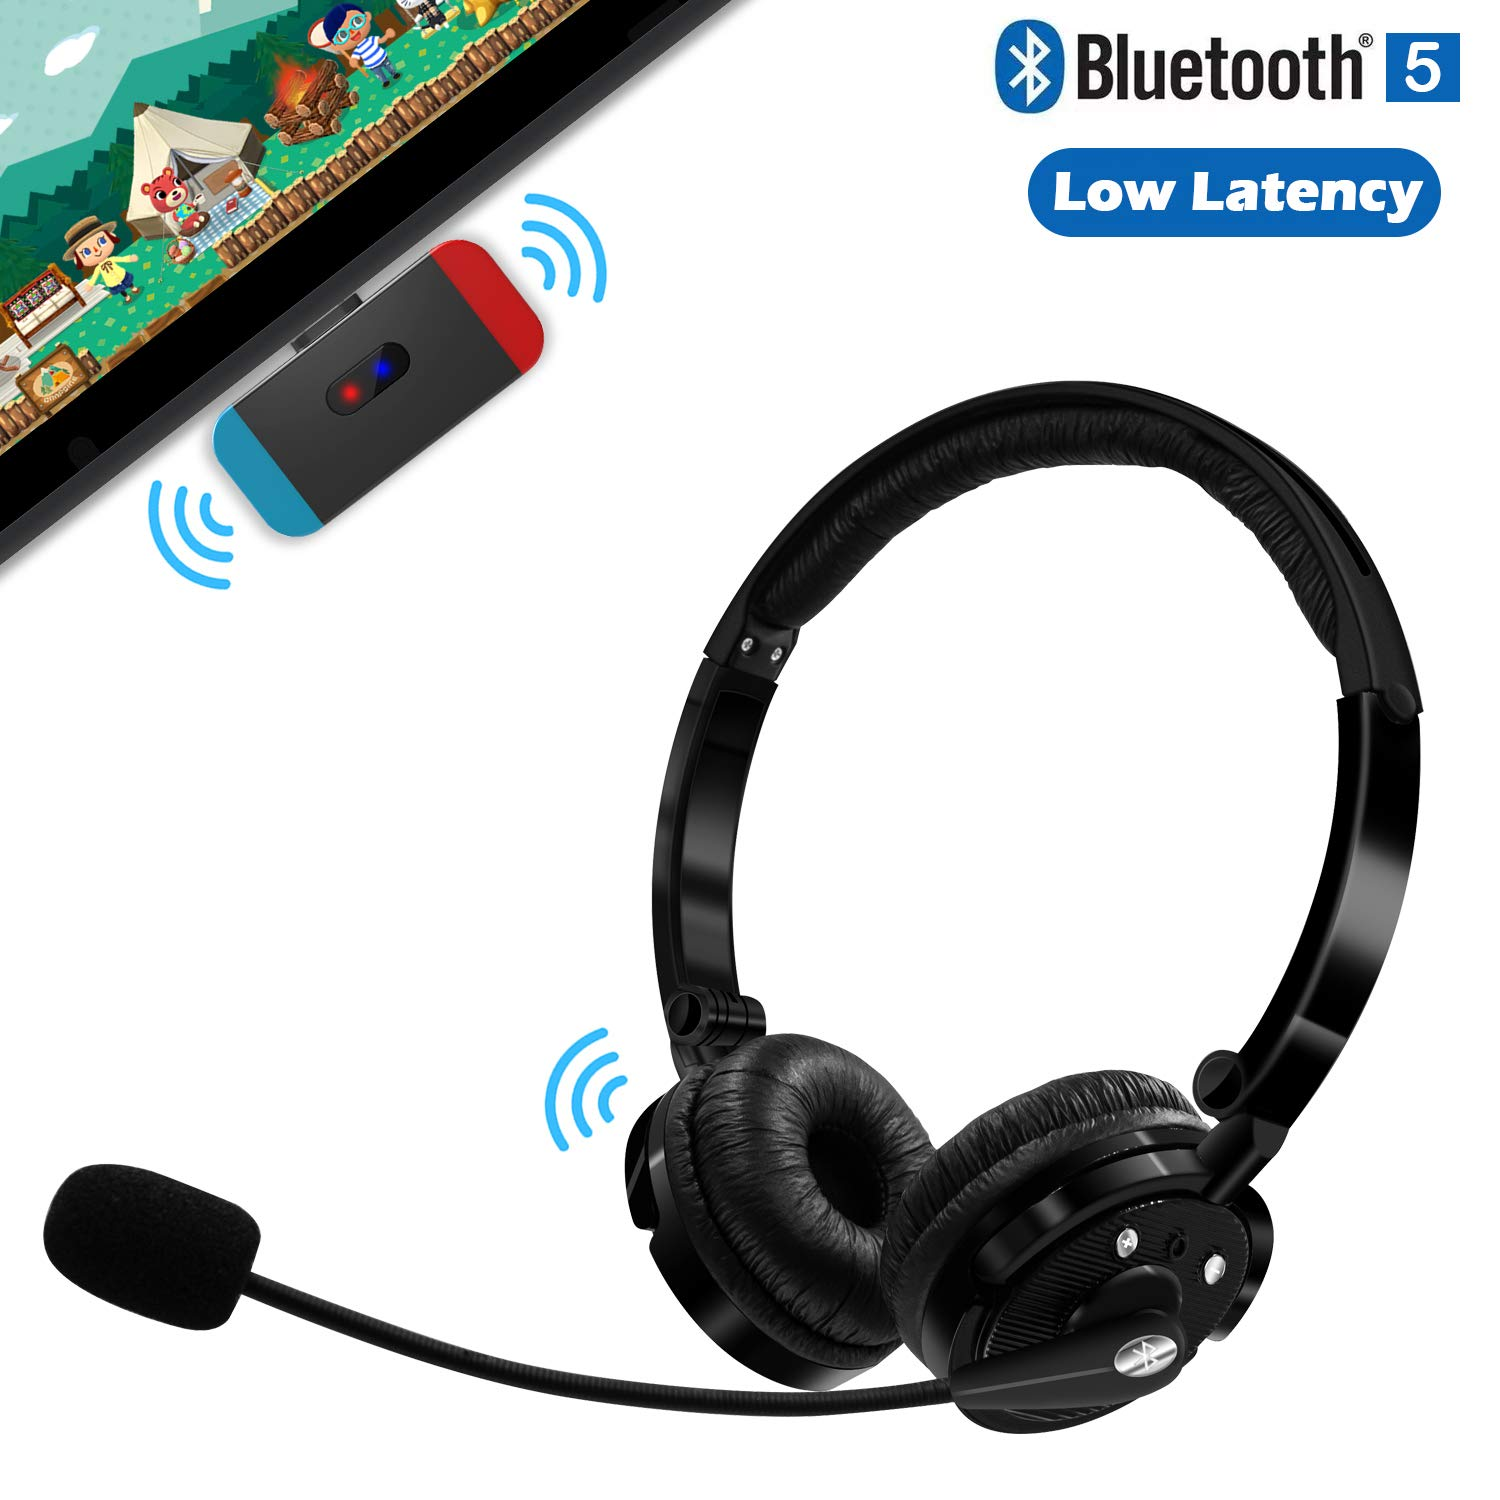 Amazon Com Friencity Wireless Gaming Headset Set W Usb C Audio Dongle Transmitter For Nintendo Switch Noise Cancelling Bluetooth Headphones W Mic For Ps4 Pc Voice Chat Music No Audio Delay Plug